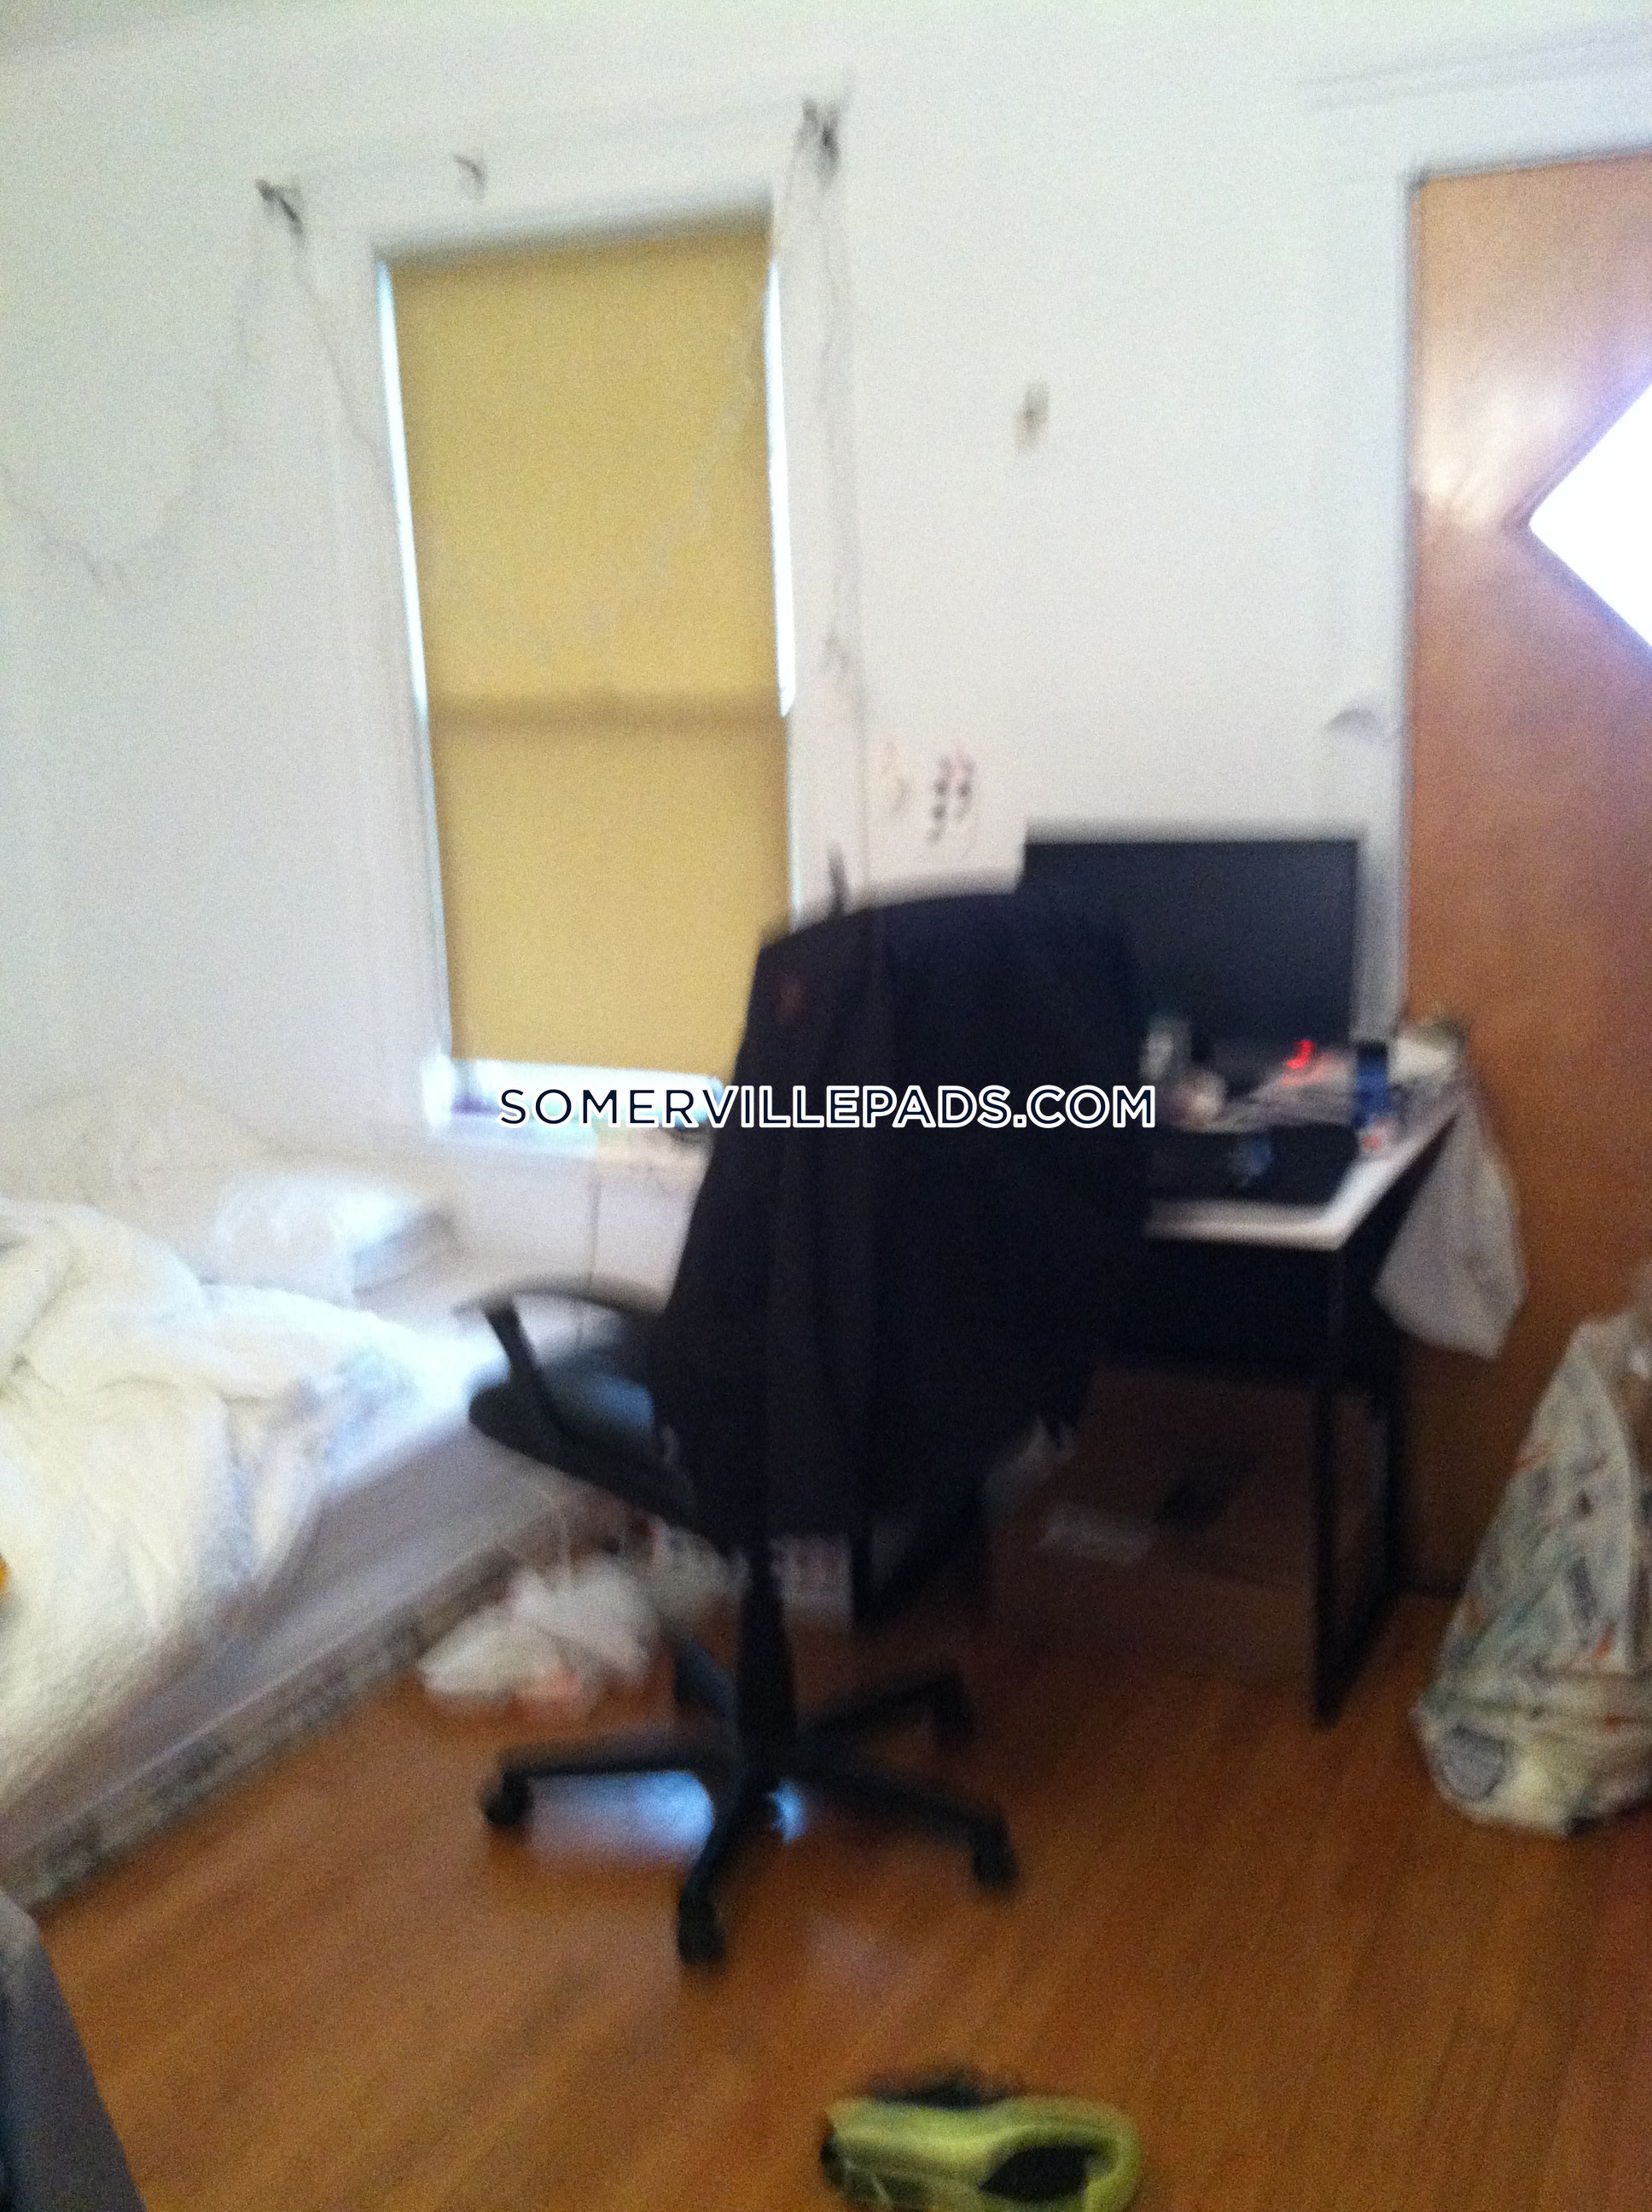 3-beds-1-bath-somerville-dali-inman-squares-2950-288458